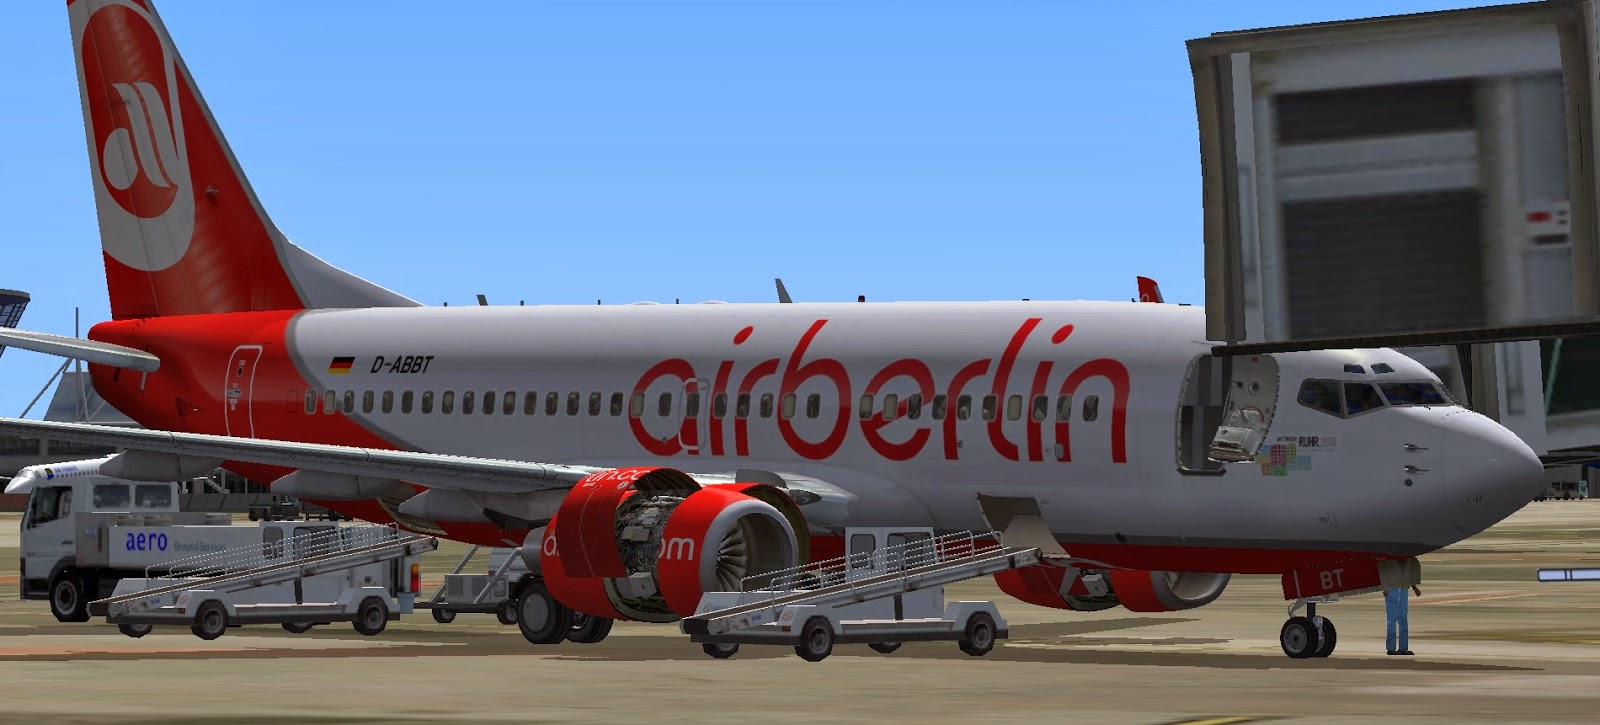 Ifly 737 ngx download